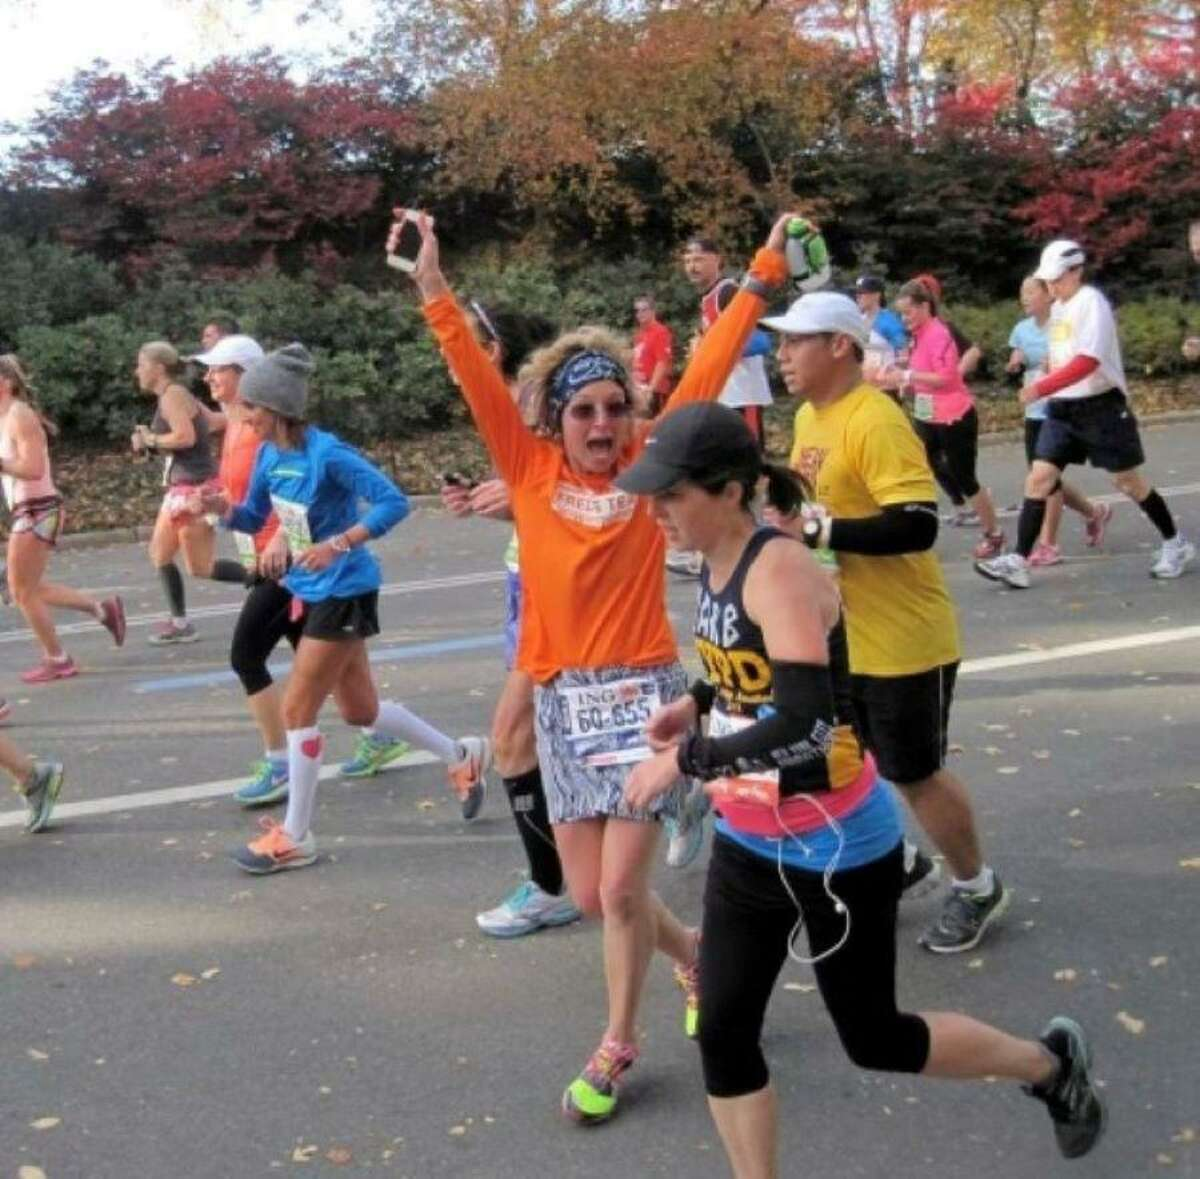 Ridgefield resident Claire Gladstone is preparing to run her 100th marathon in November. Pictured, Gladstone runs for Fred's Team during the New York City Marathon in 2013.